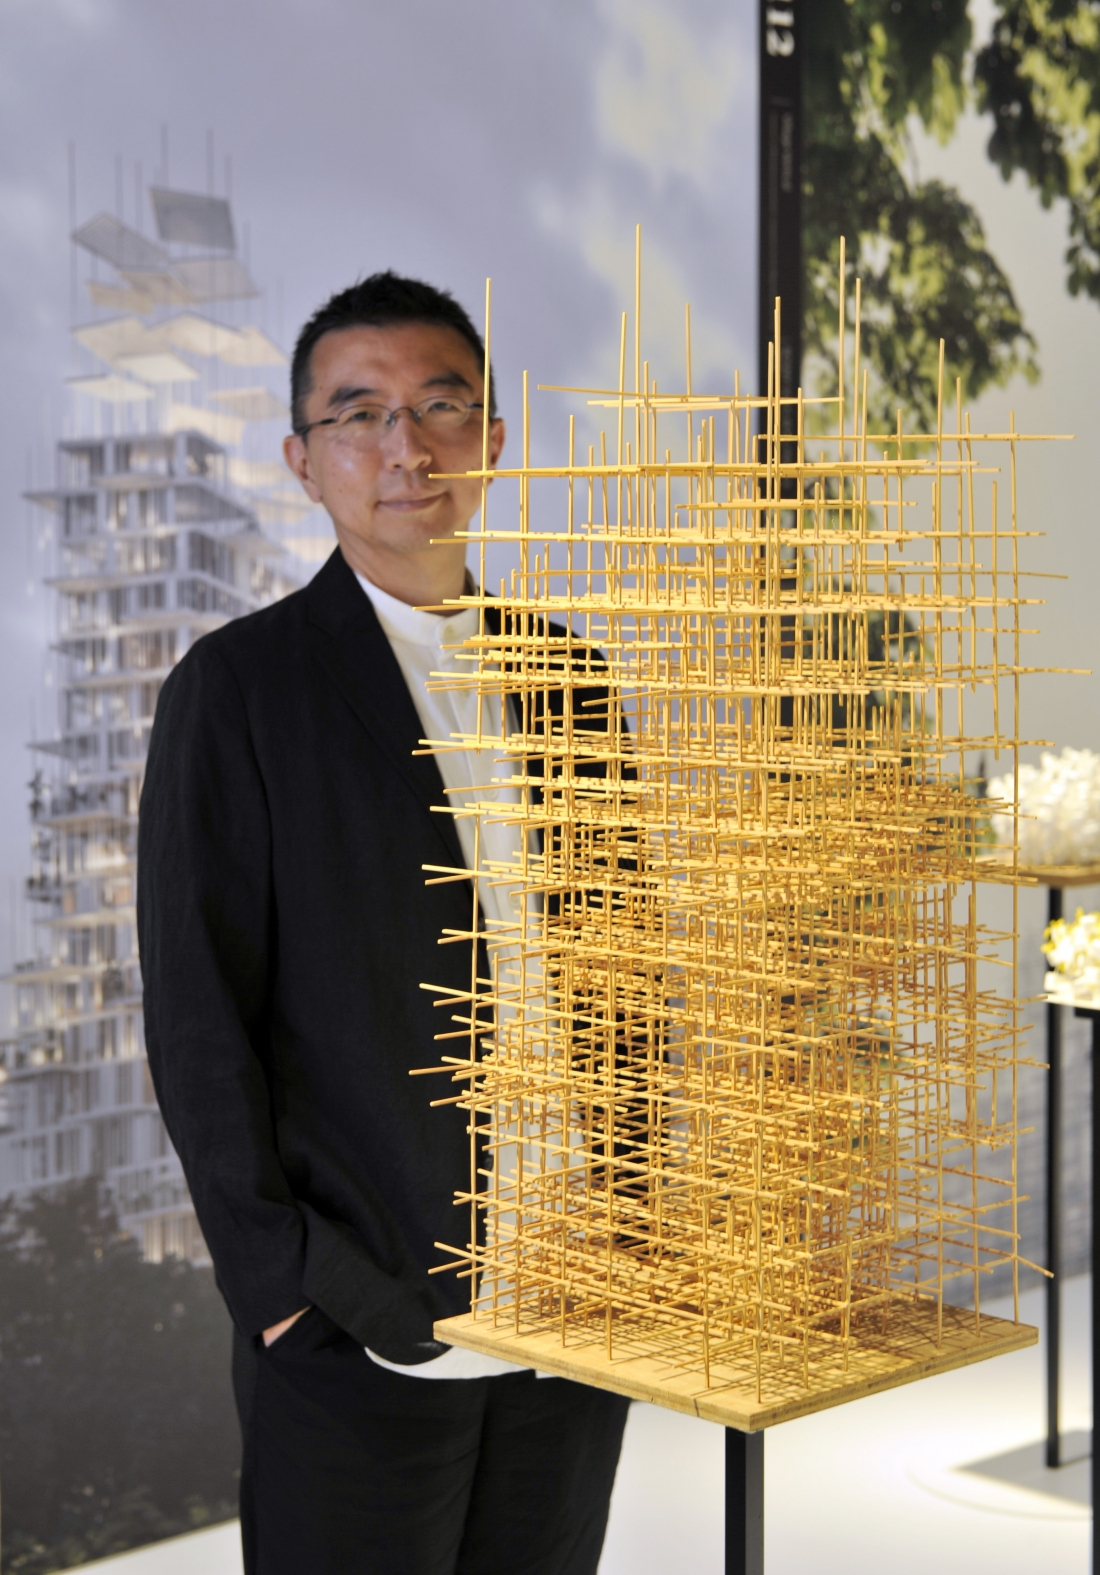 Sou Fujimoto, acclaimed Japanese architect, inspects Mist Tower, one of 100 exhibits on display in his exhibition Futures of the Future at Japan House London